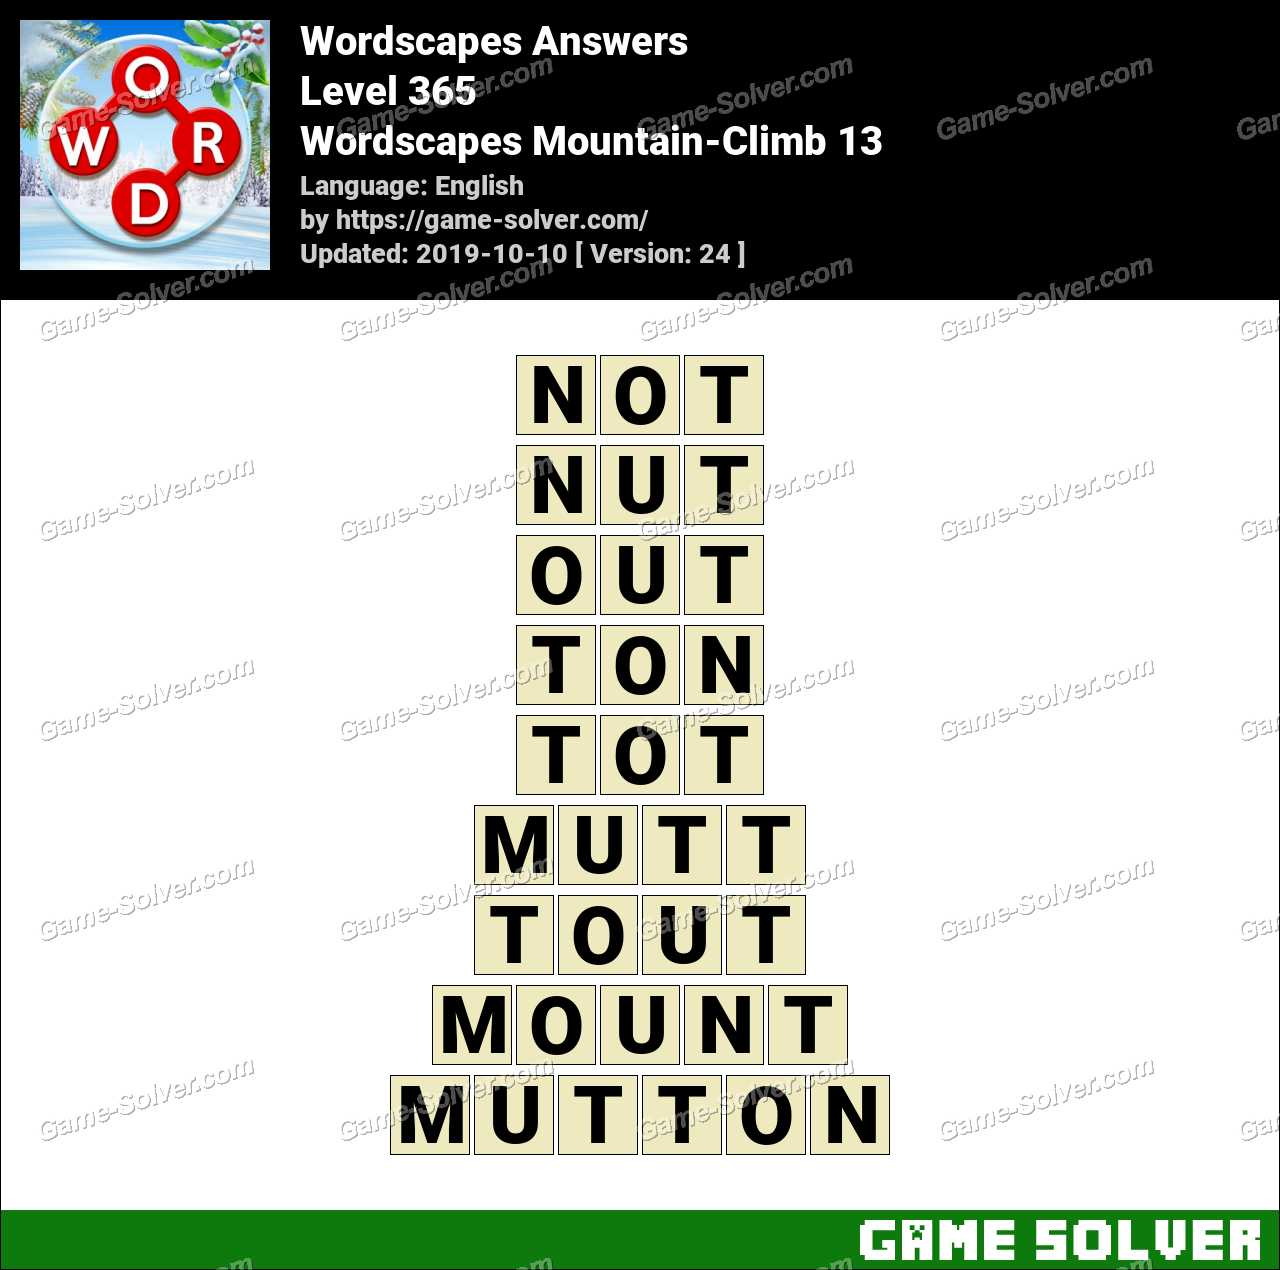 Wordscapes Mountain-Climb 13 Answers